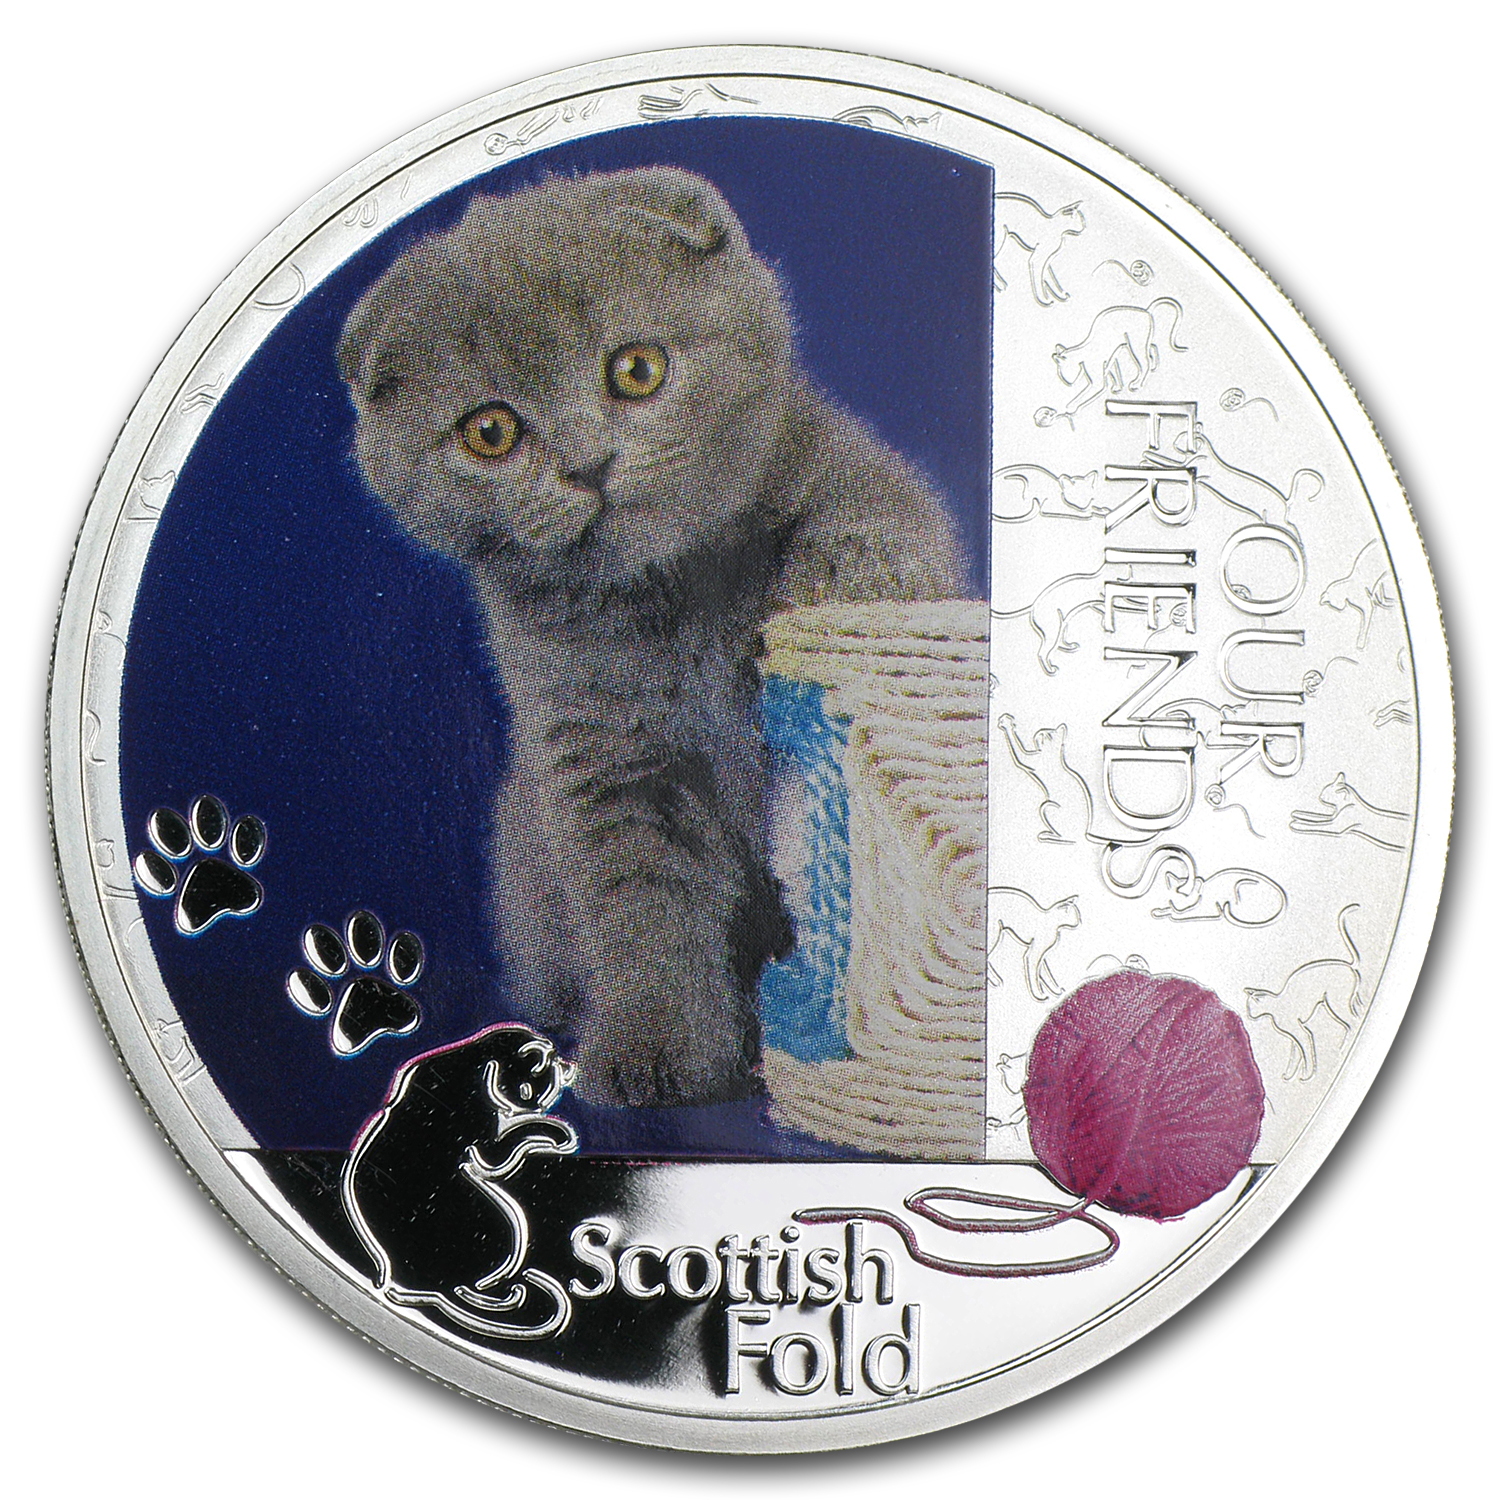 2012 1 oz Silver Niue Friends Kitten Collection - Scottish Fold